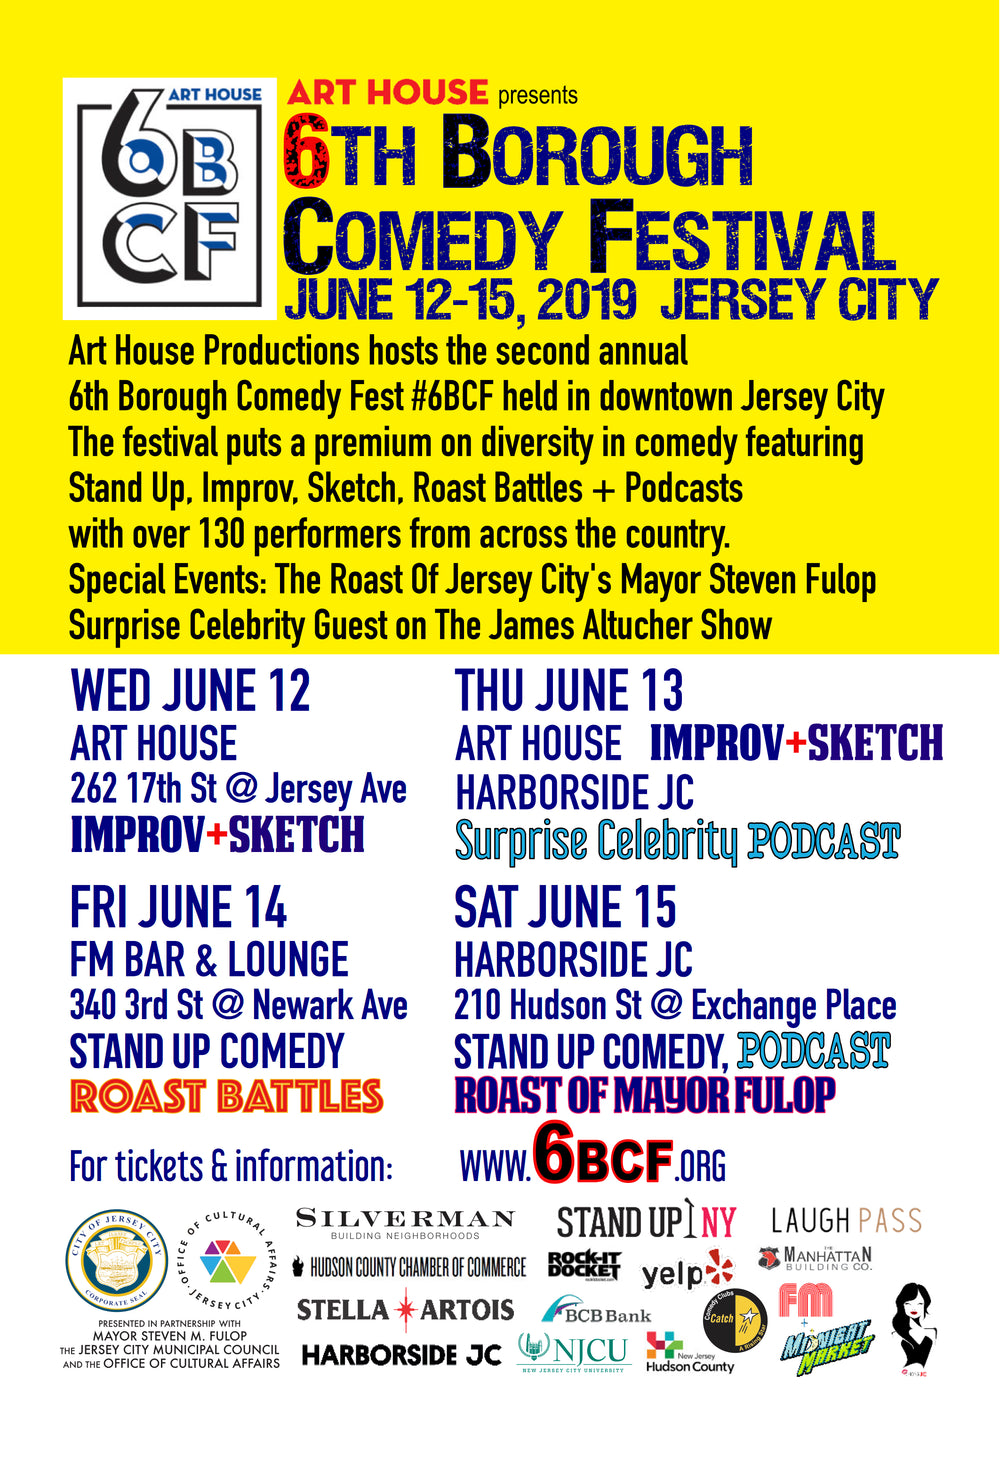 6th Borough Comedy Fest: June 12th - June 15th 2019